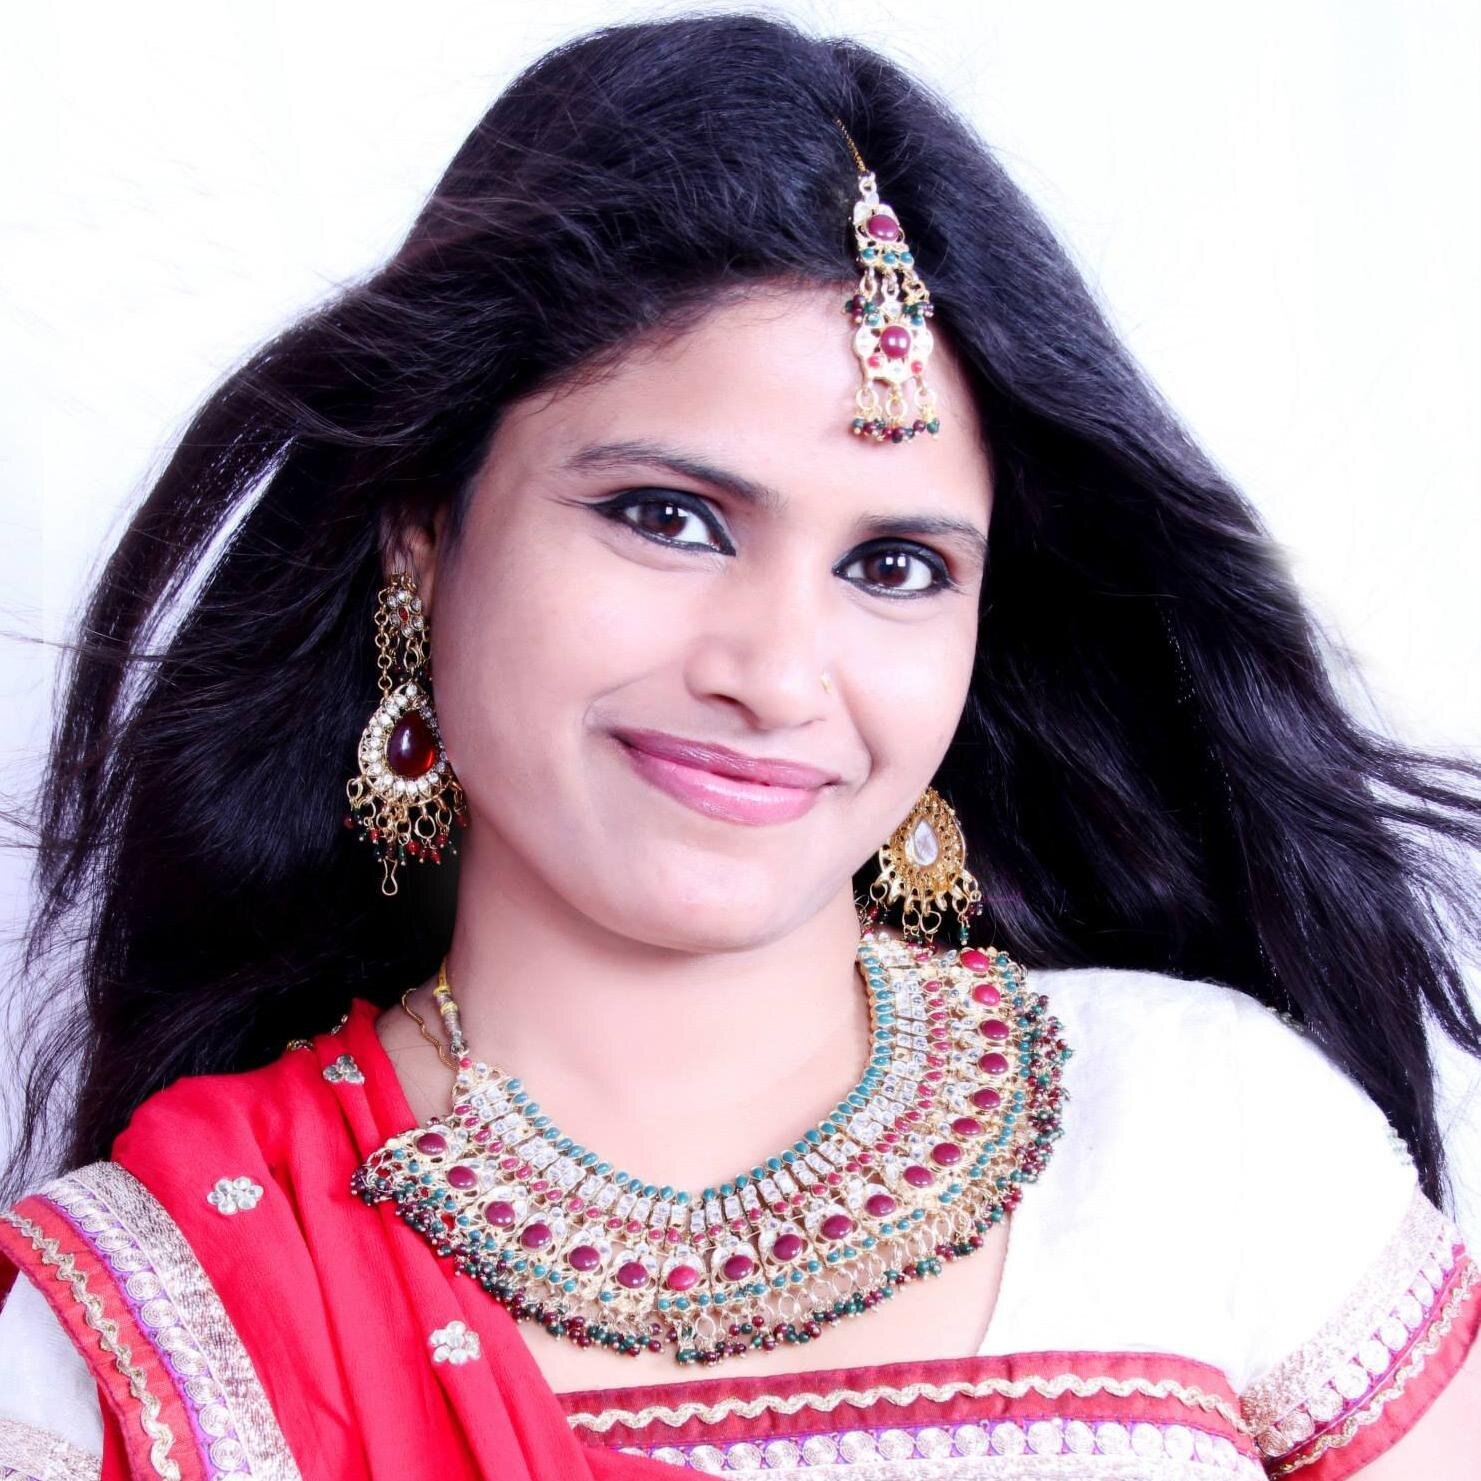 Bhojpuri Singer 'Khushboo Uttam' wiki Biography, Albums, Movies, Bhojpuri Khushboo Uttam play back singer in super hit films list, Khushboo Uttam Albums, awards and Profile Info on Top 10 Bhojpuri